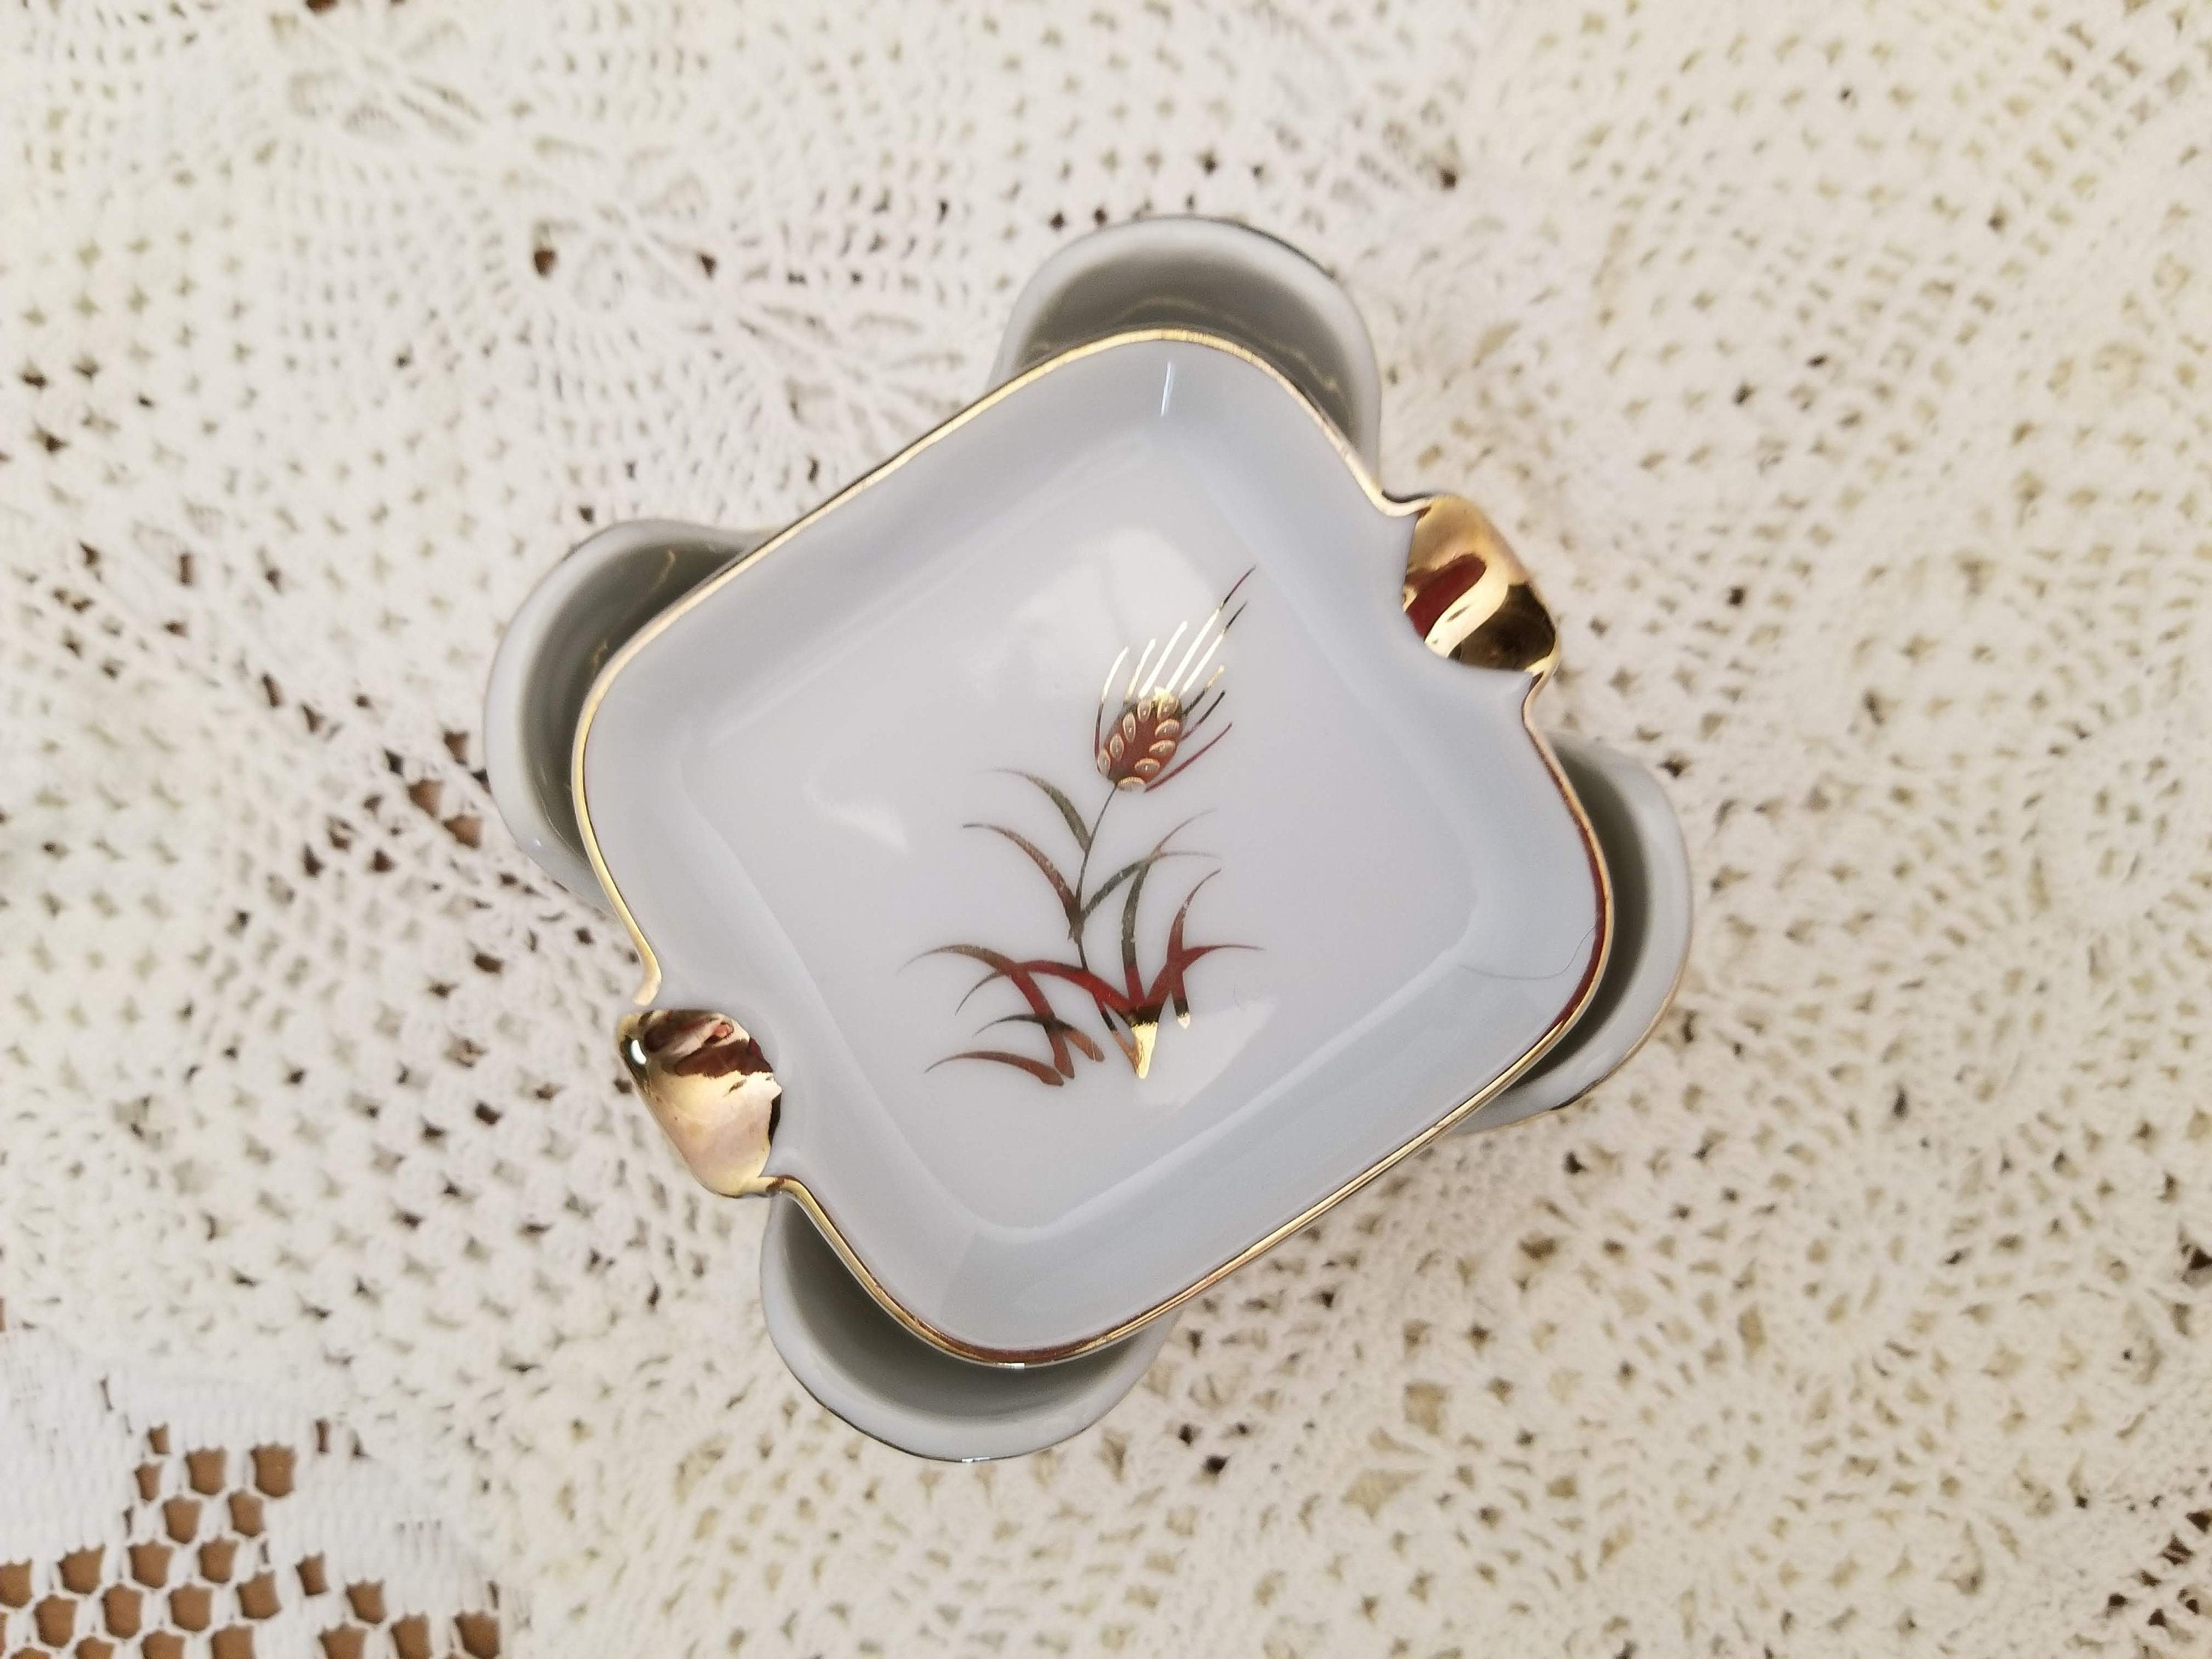 Stack of Lefton China Hand Painted Gold Wheat Vintage White Porcelain Ashtrays in a Holder